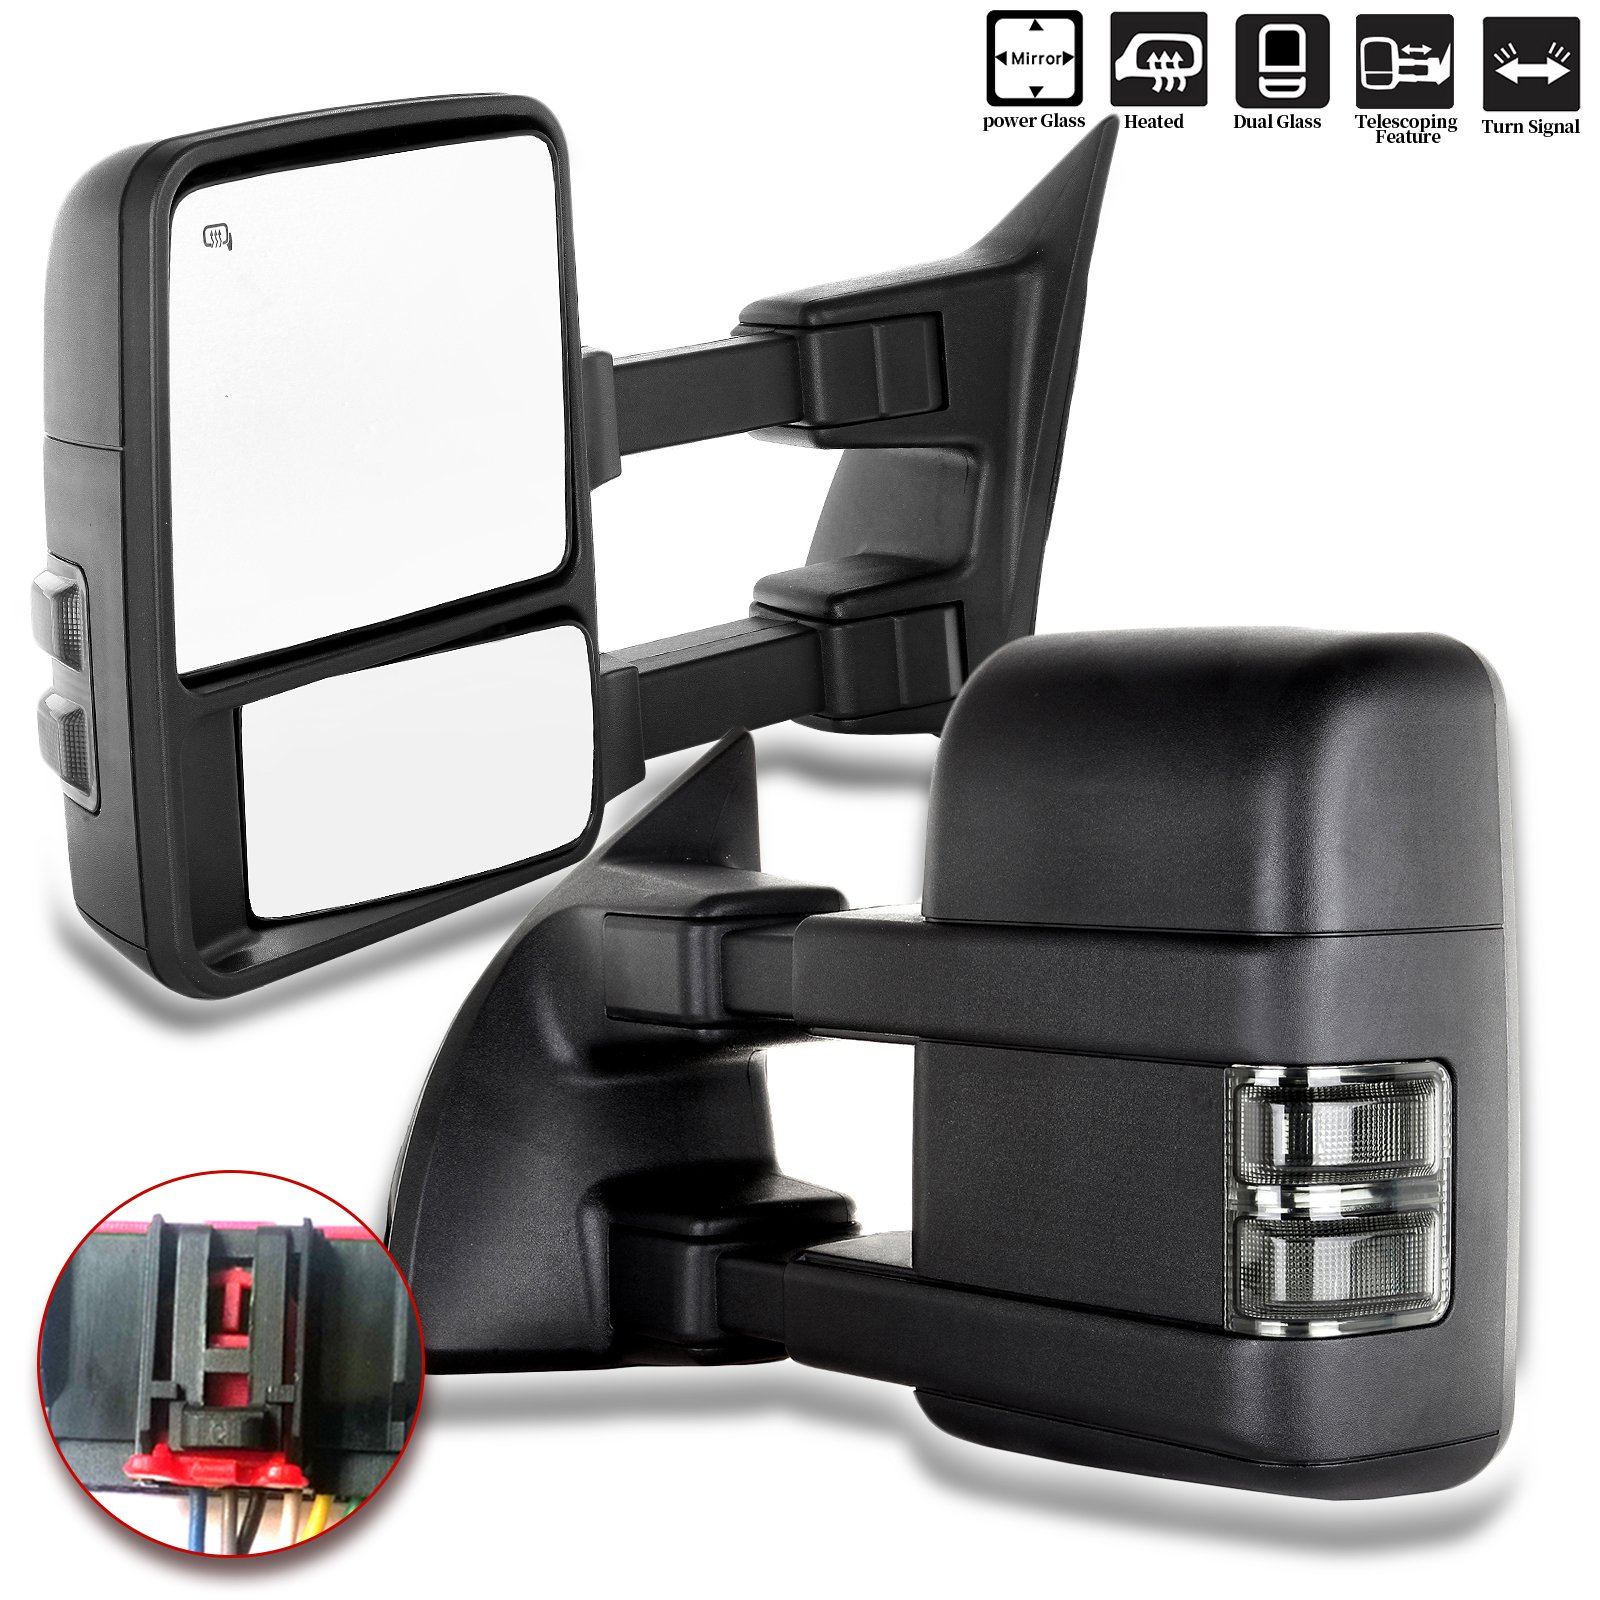 ECCPP Towing Mirrors Replacement fit for Ford F-250 F-350 F-450 F-550 Power Heated Signal Pair Mirrors 2008 2009 2010 2011 2012 2013 2014 2015 2016 by ECCPP